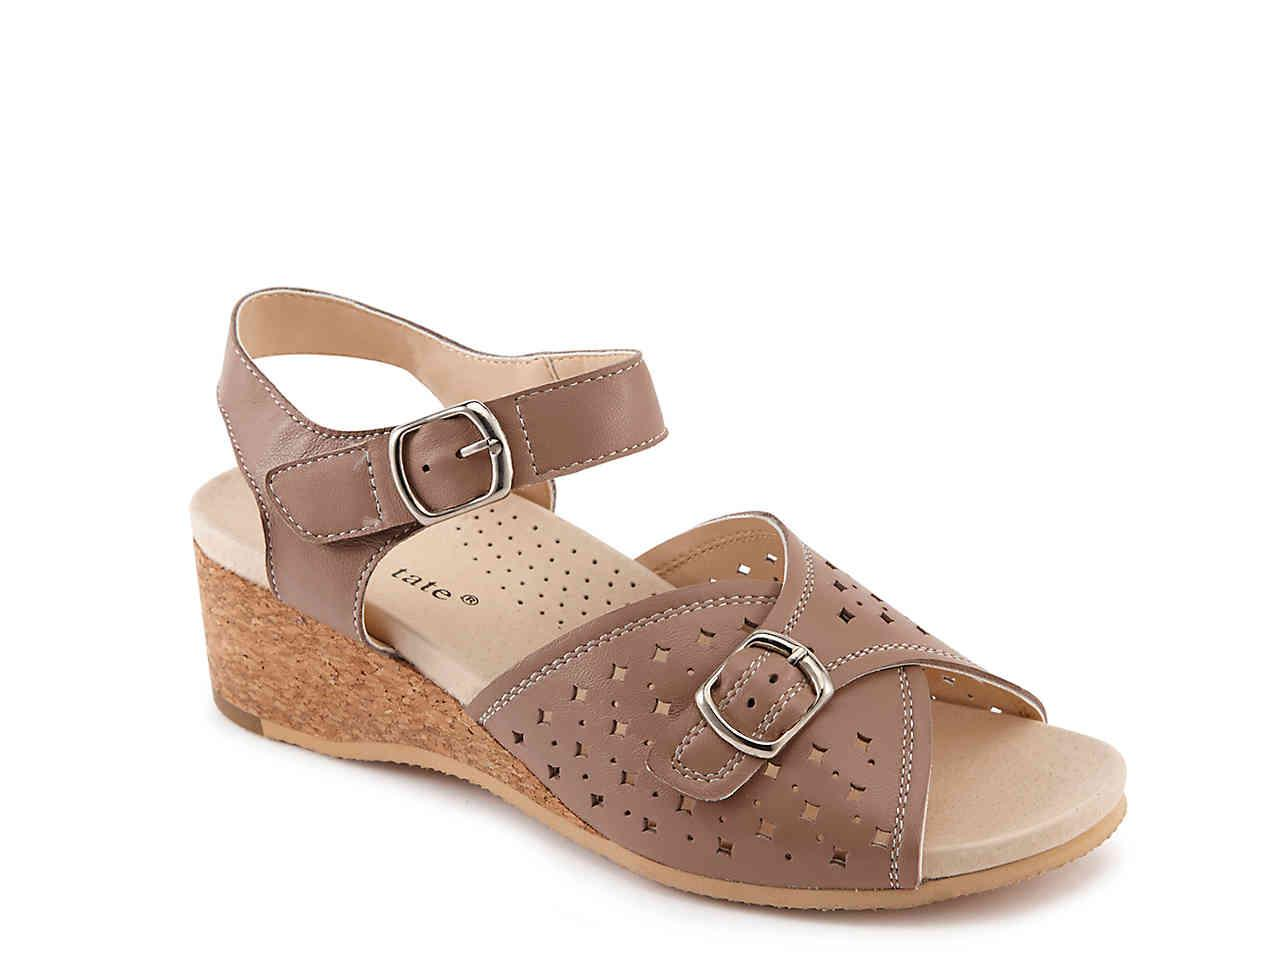 9914a4f1735 Lyst - David Tate Briana Wedge Sandal in Brown - Save 14%